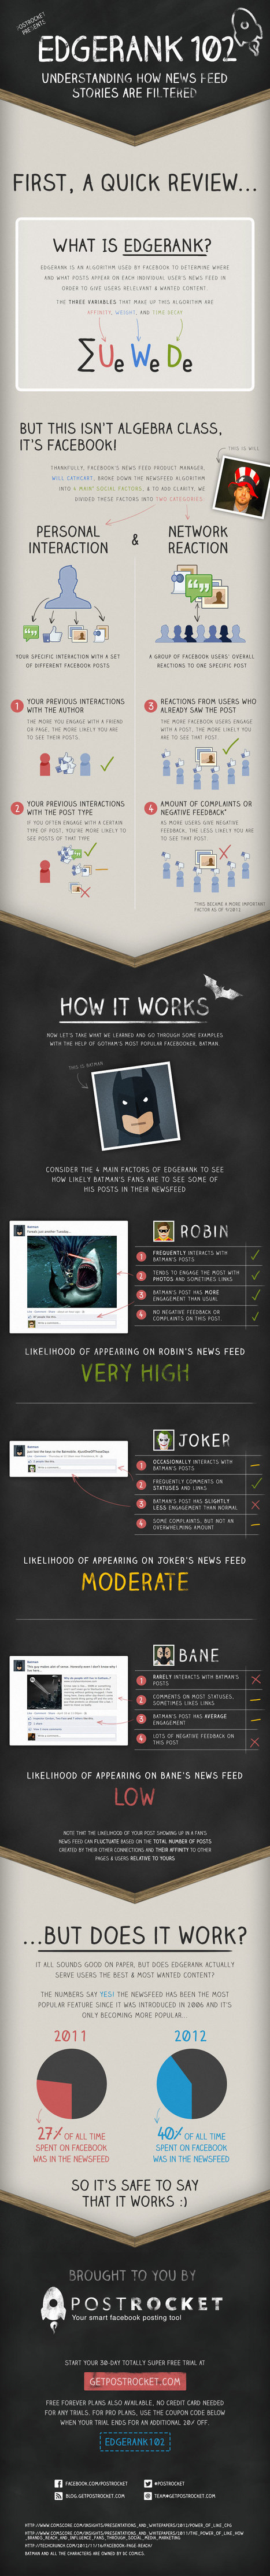 Demystifying How Facebook's EdgeRank Algorithm Works [INFOGRAPHIC] | Tips & Facts For Social Media | Scoop.it